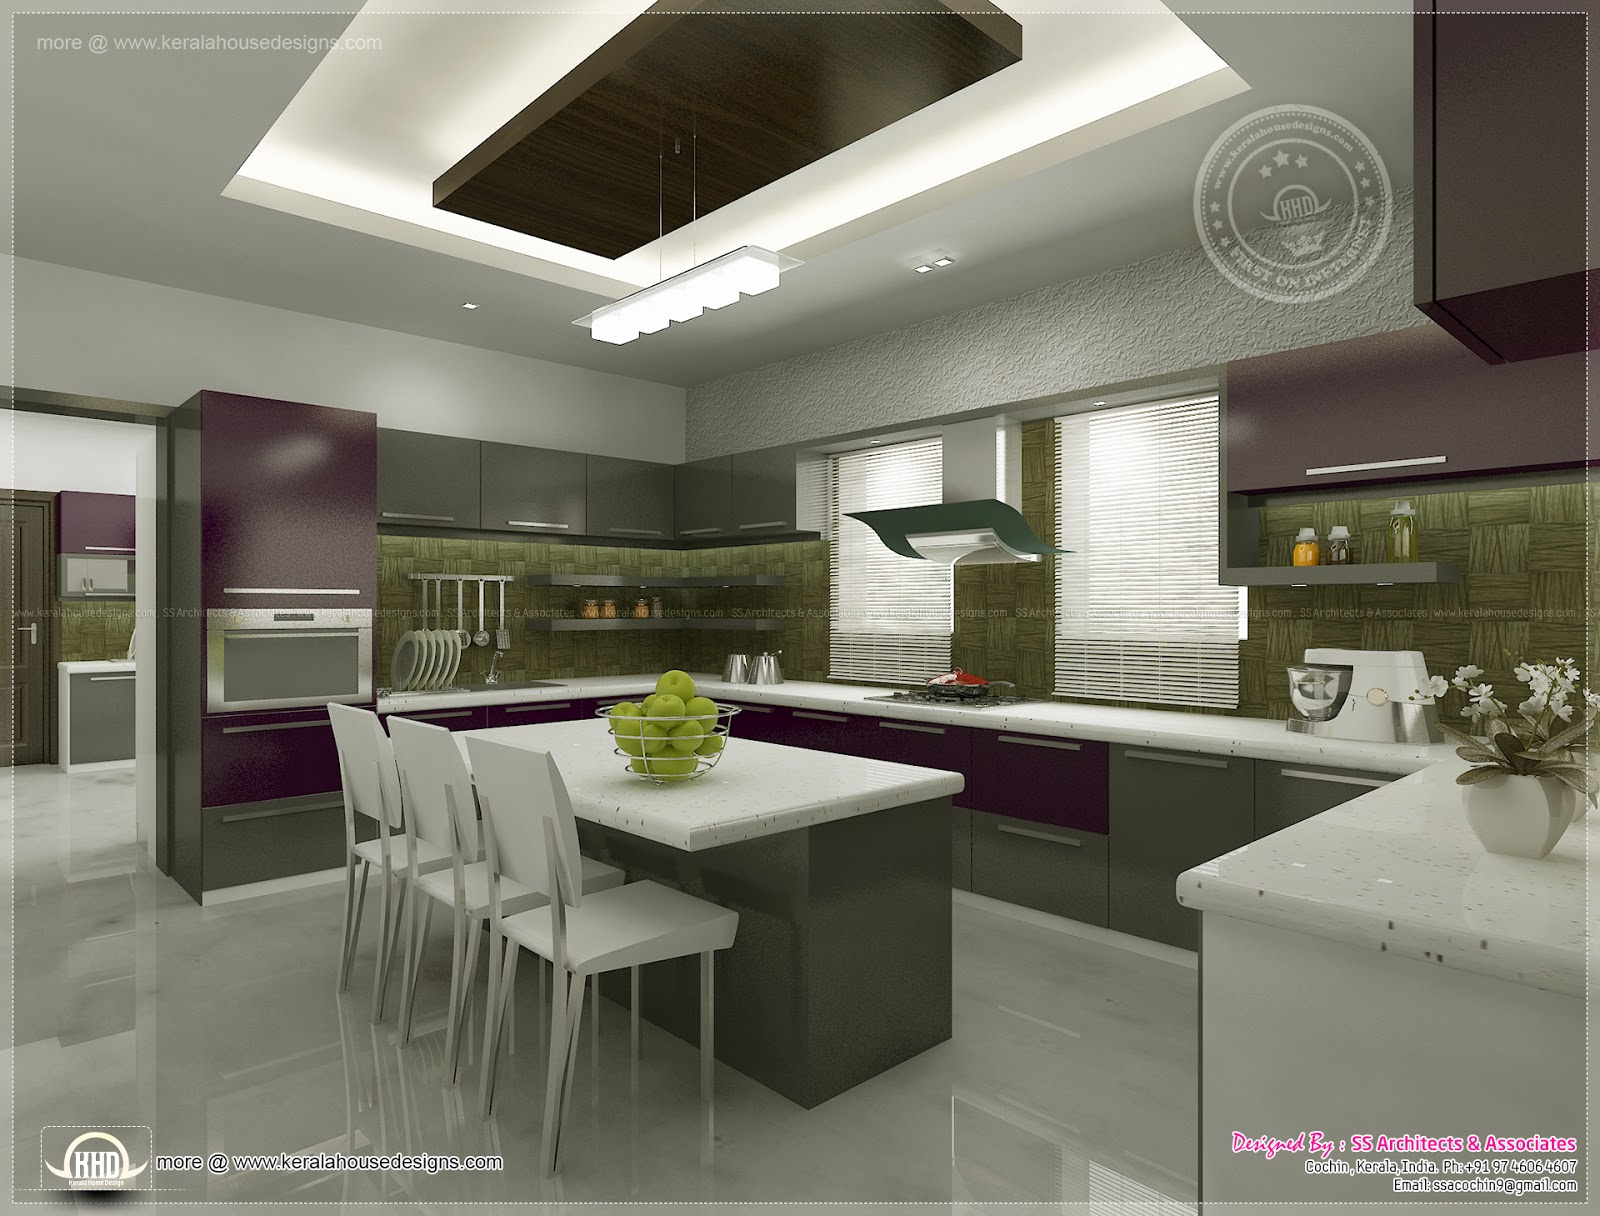 Kitchen Interior Design: Kitchen Interior Views By SS Architects, Cochin